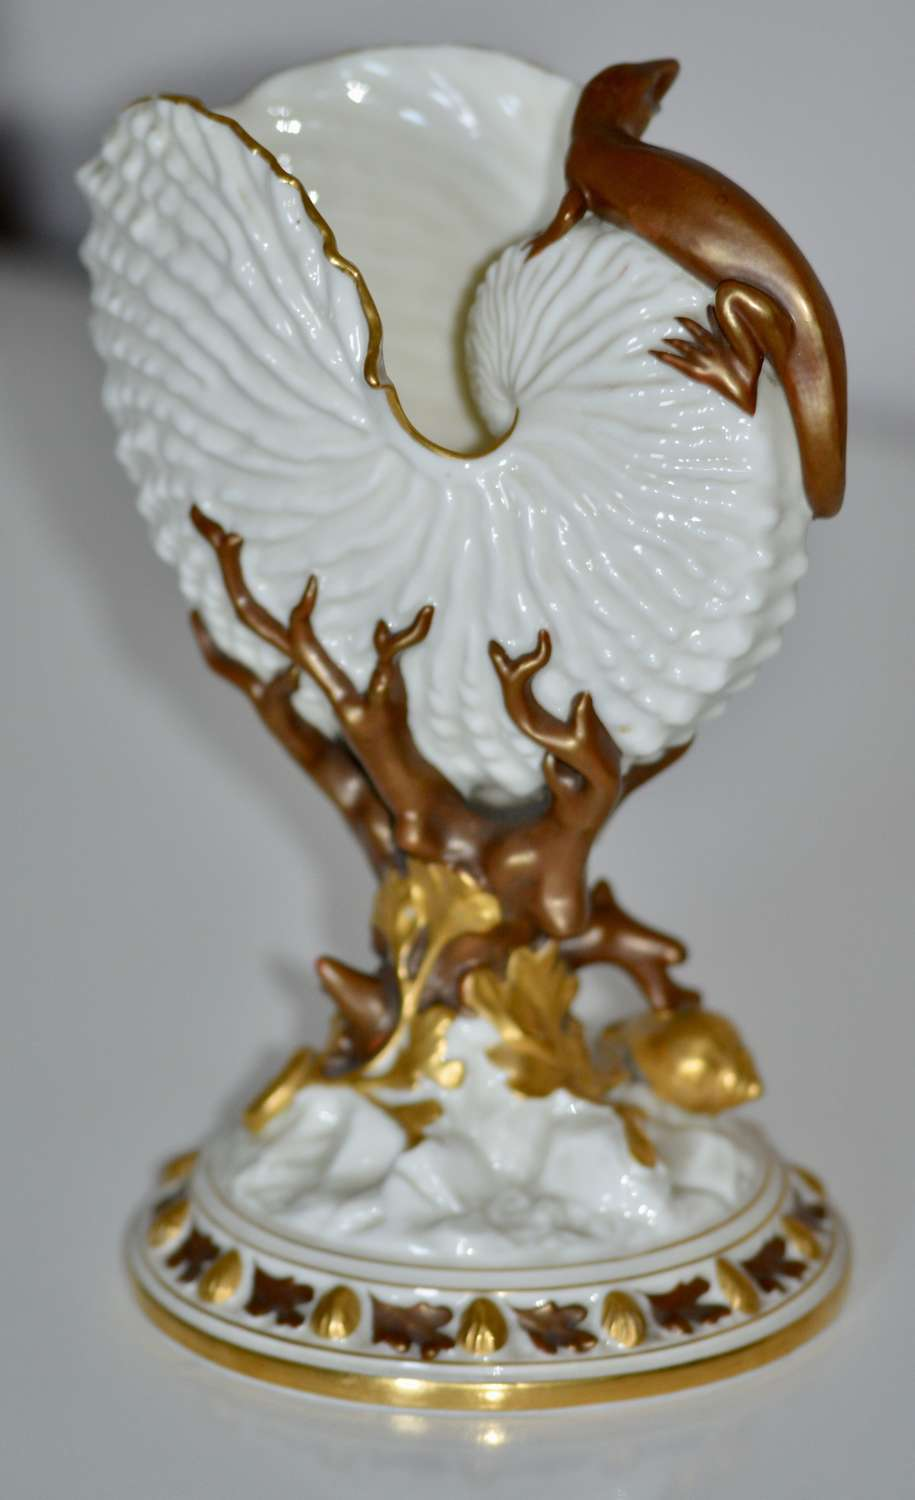 An Exceptional Royal Worcester Vase in the Form of Conch Shell 1883